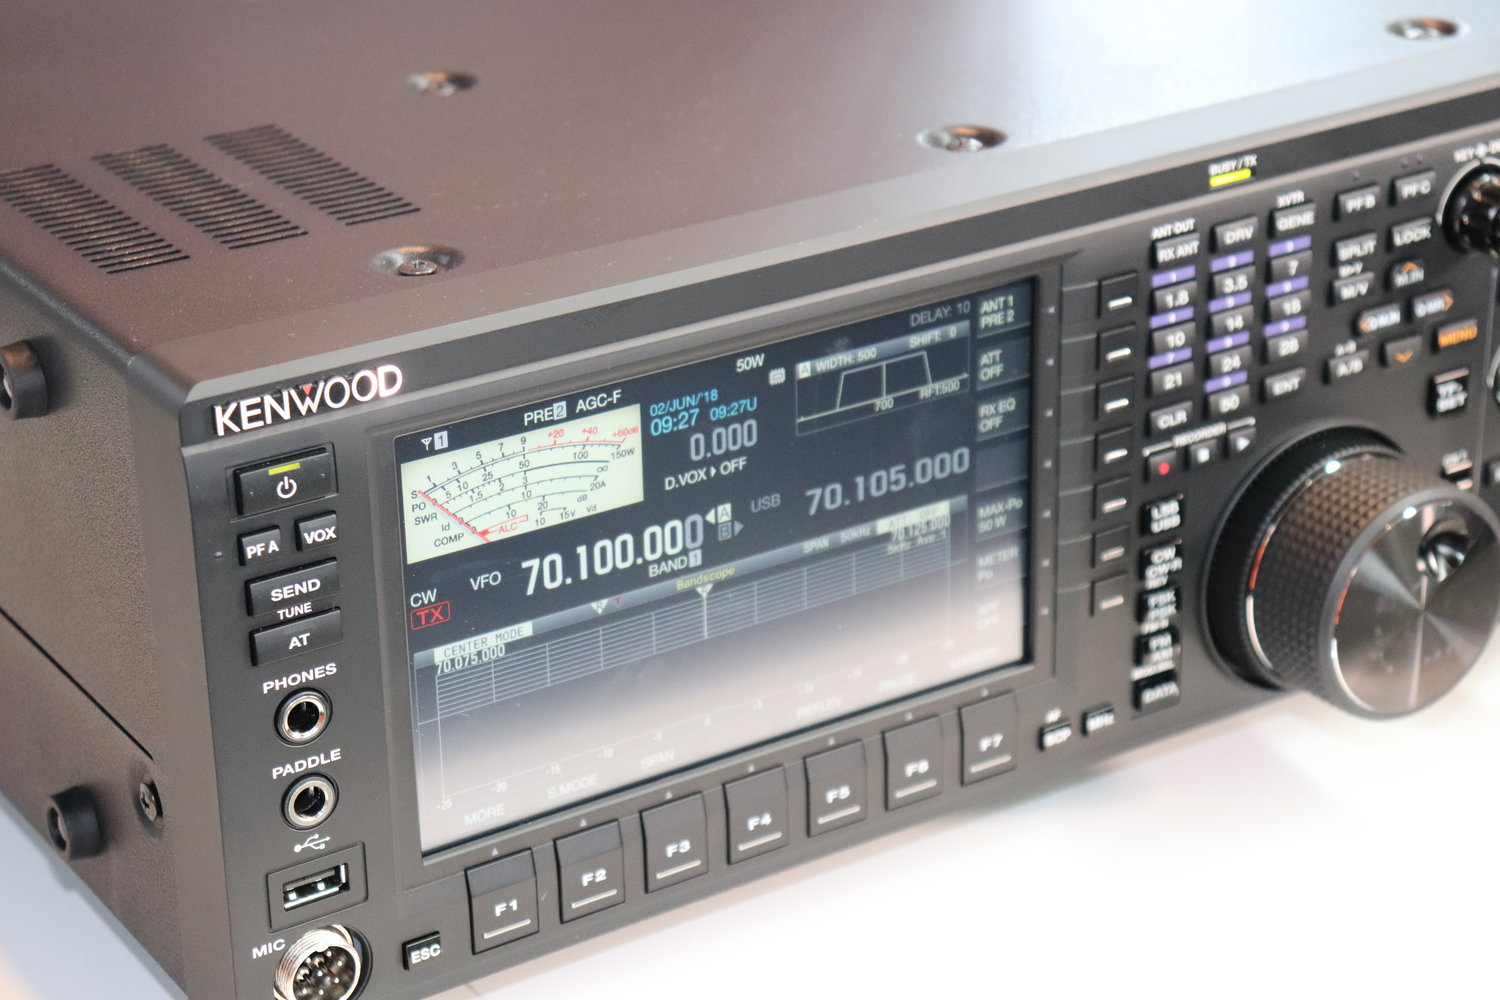 Kenwood TS-890S Pricing Announced — ICQ Amateur / Ham Radio